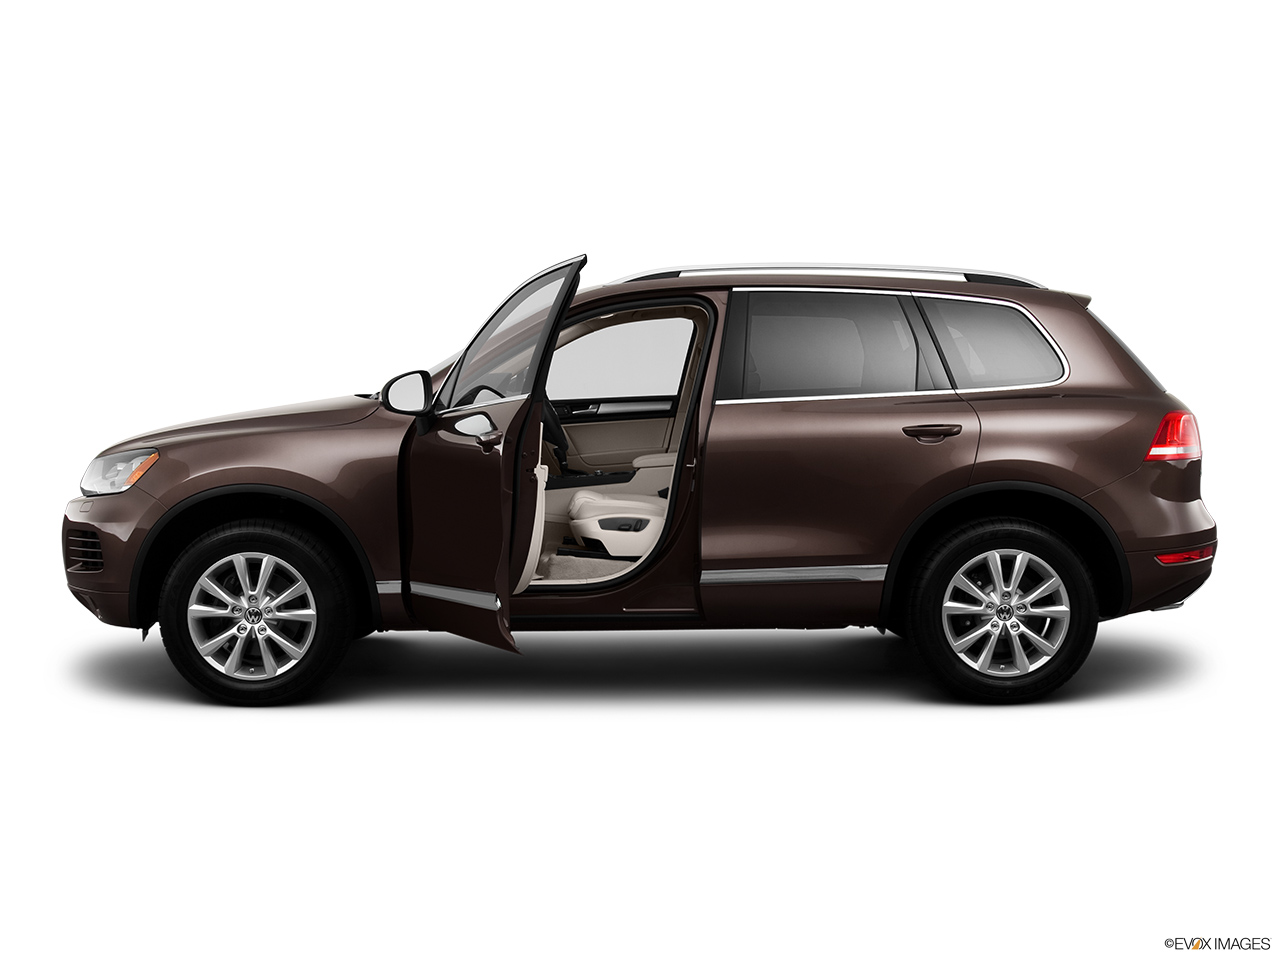 2014 Volkswagen Touareg 2 V6 Sport Driver's side profile with drivers side door open.